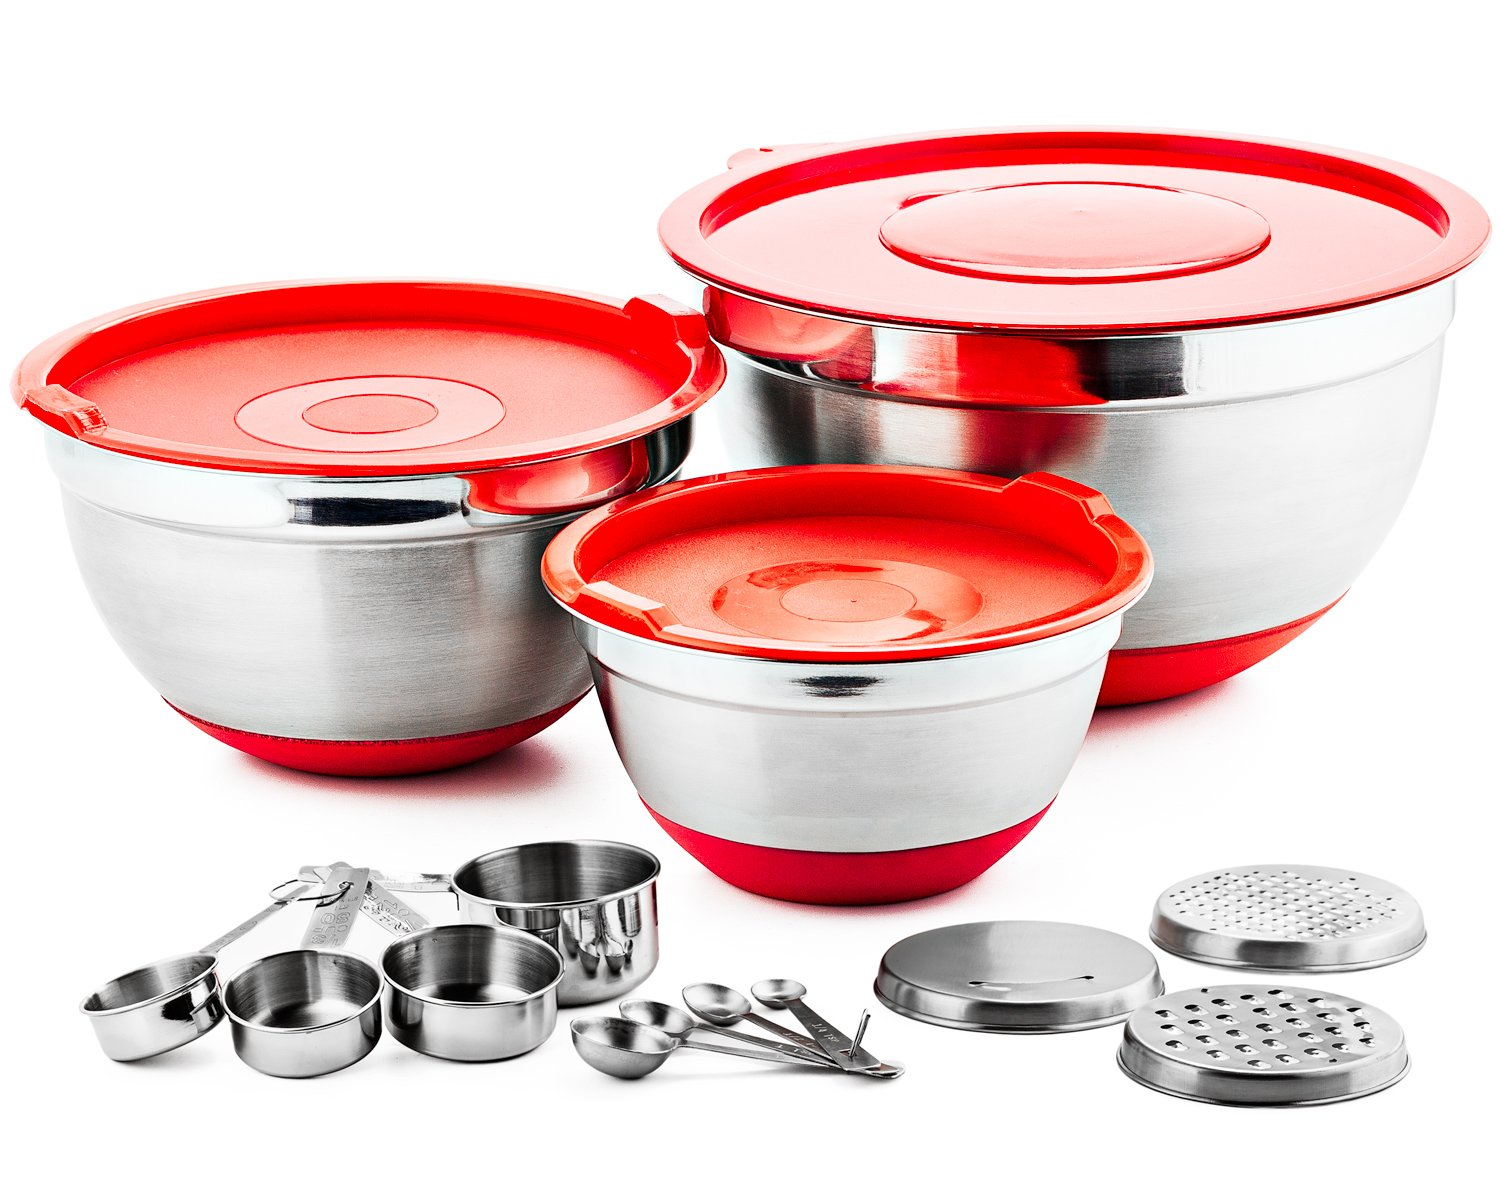 Chefs Star 17 Piece Stainless Steel Mixing Bowl Set with Anti-Slip Silicone Base - Includes 3 Stainless Steel Bowls with Lids, 3 Interchangeable Graters, 4 Measuring Cups, 4 Measuring Spoons Chef's Star CSMBS17